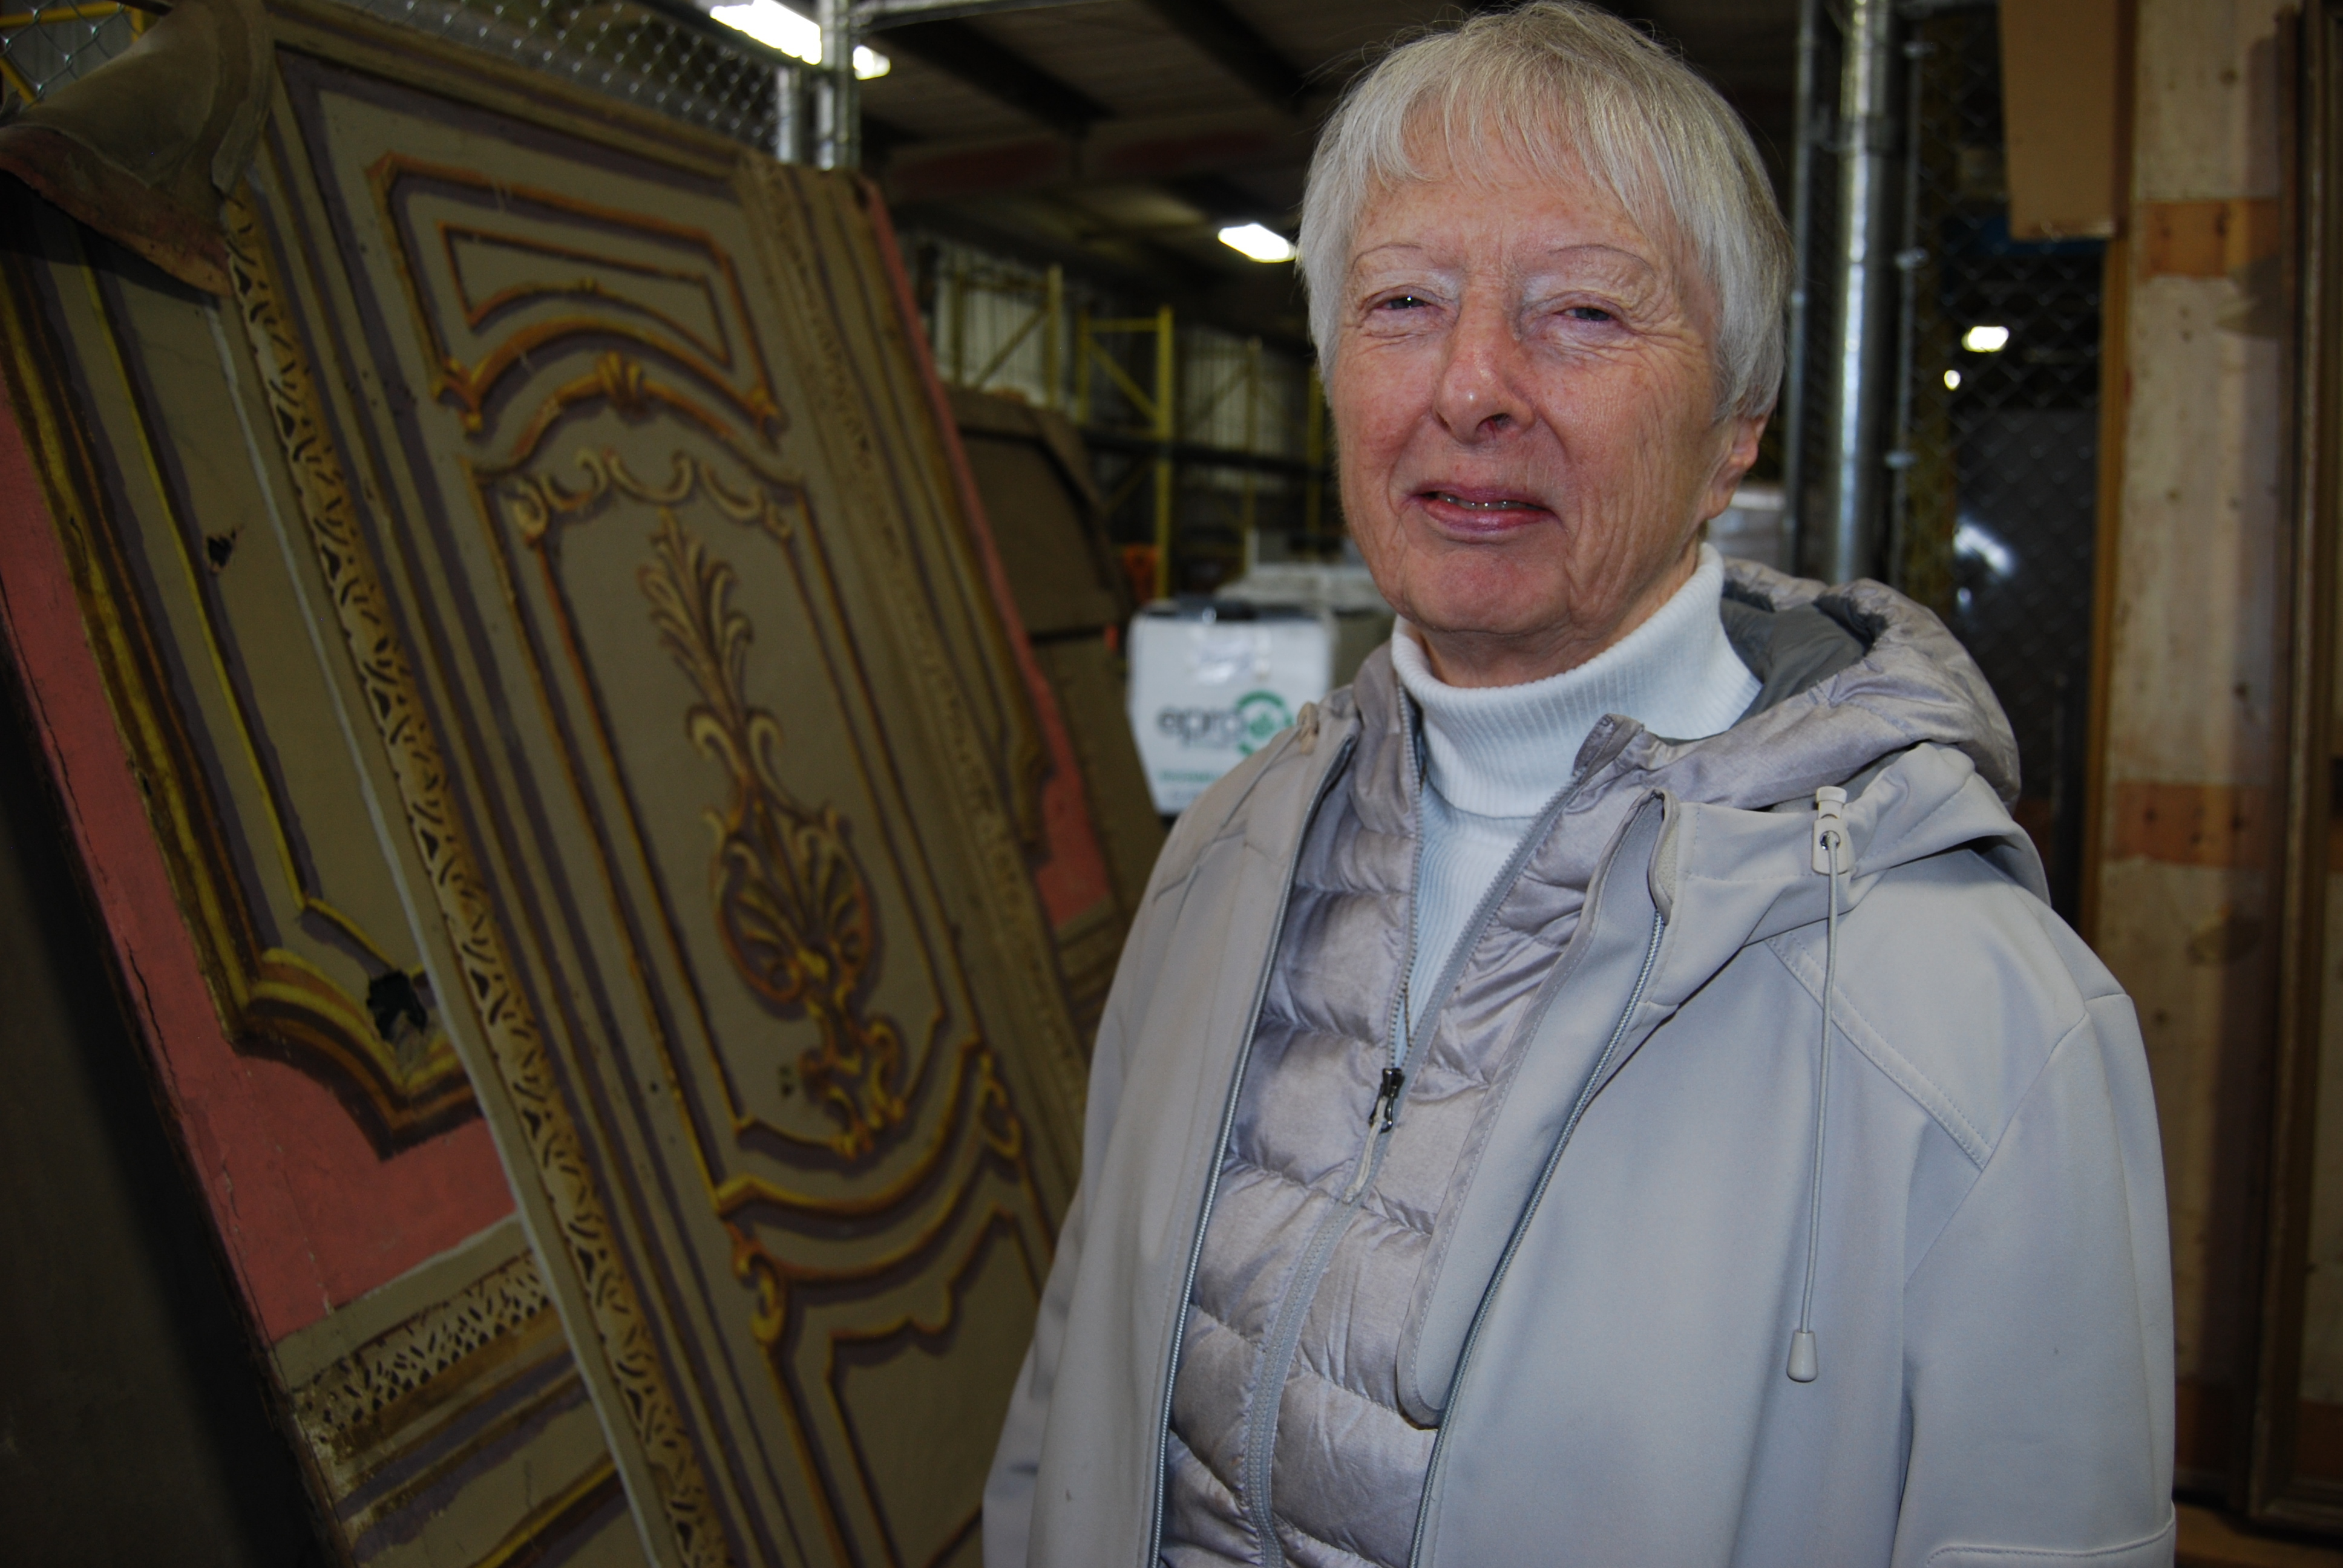 Peggy Sarjeant, the president of the Saskatoon Heritage Society, stands inside the city warehouse where dozens of Capitol relics continue to be stored. She'd like all the artifacts, including those secretly salvaged by people during the demolition, to be on display in a public space. (Guy Quenneville/CBC)